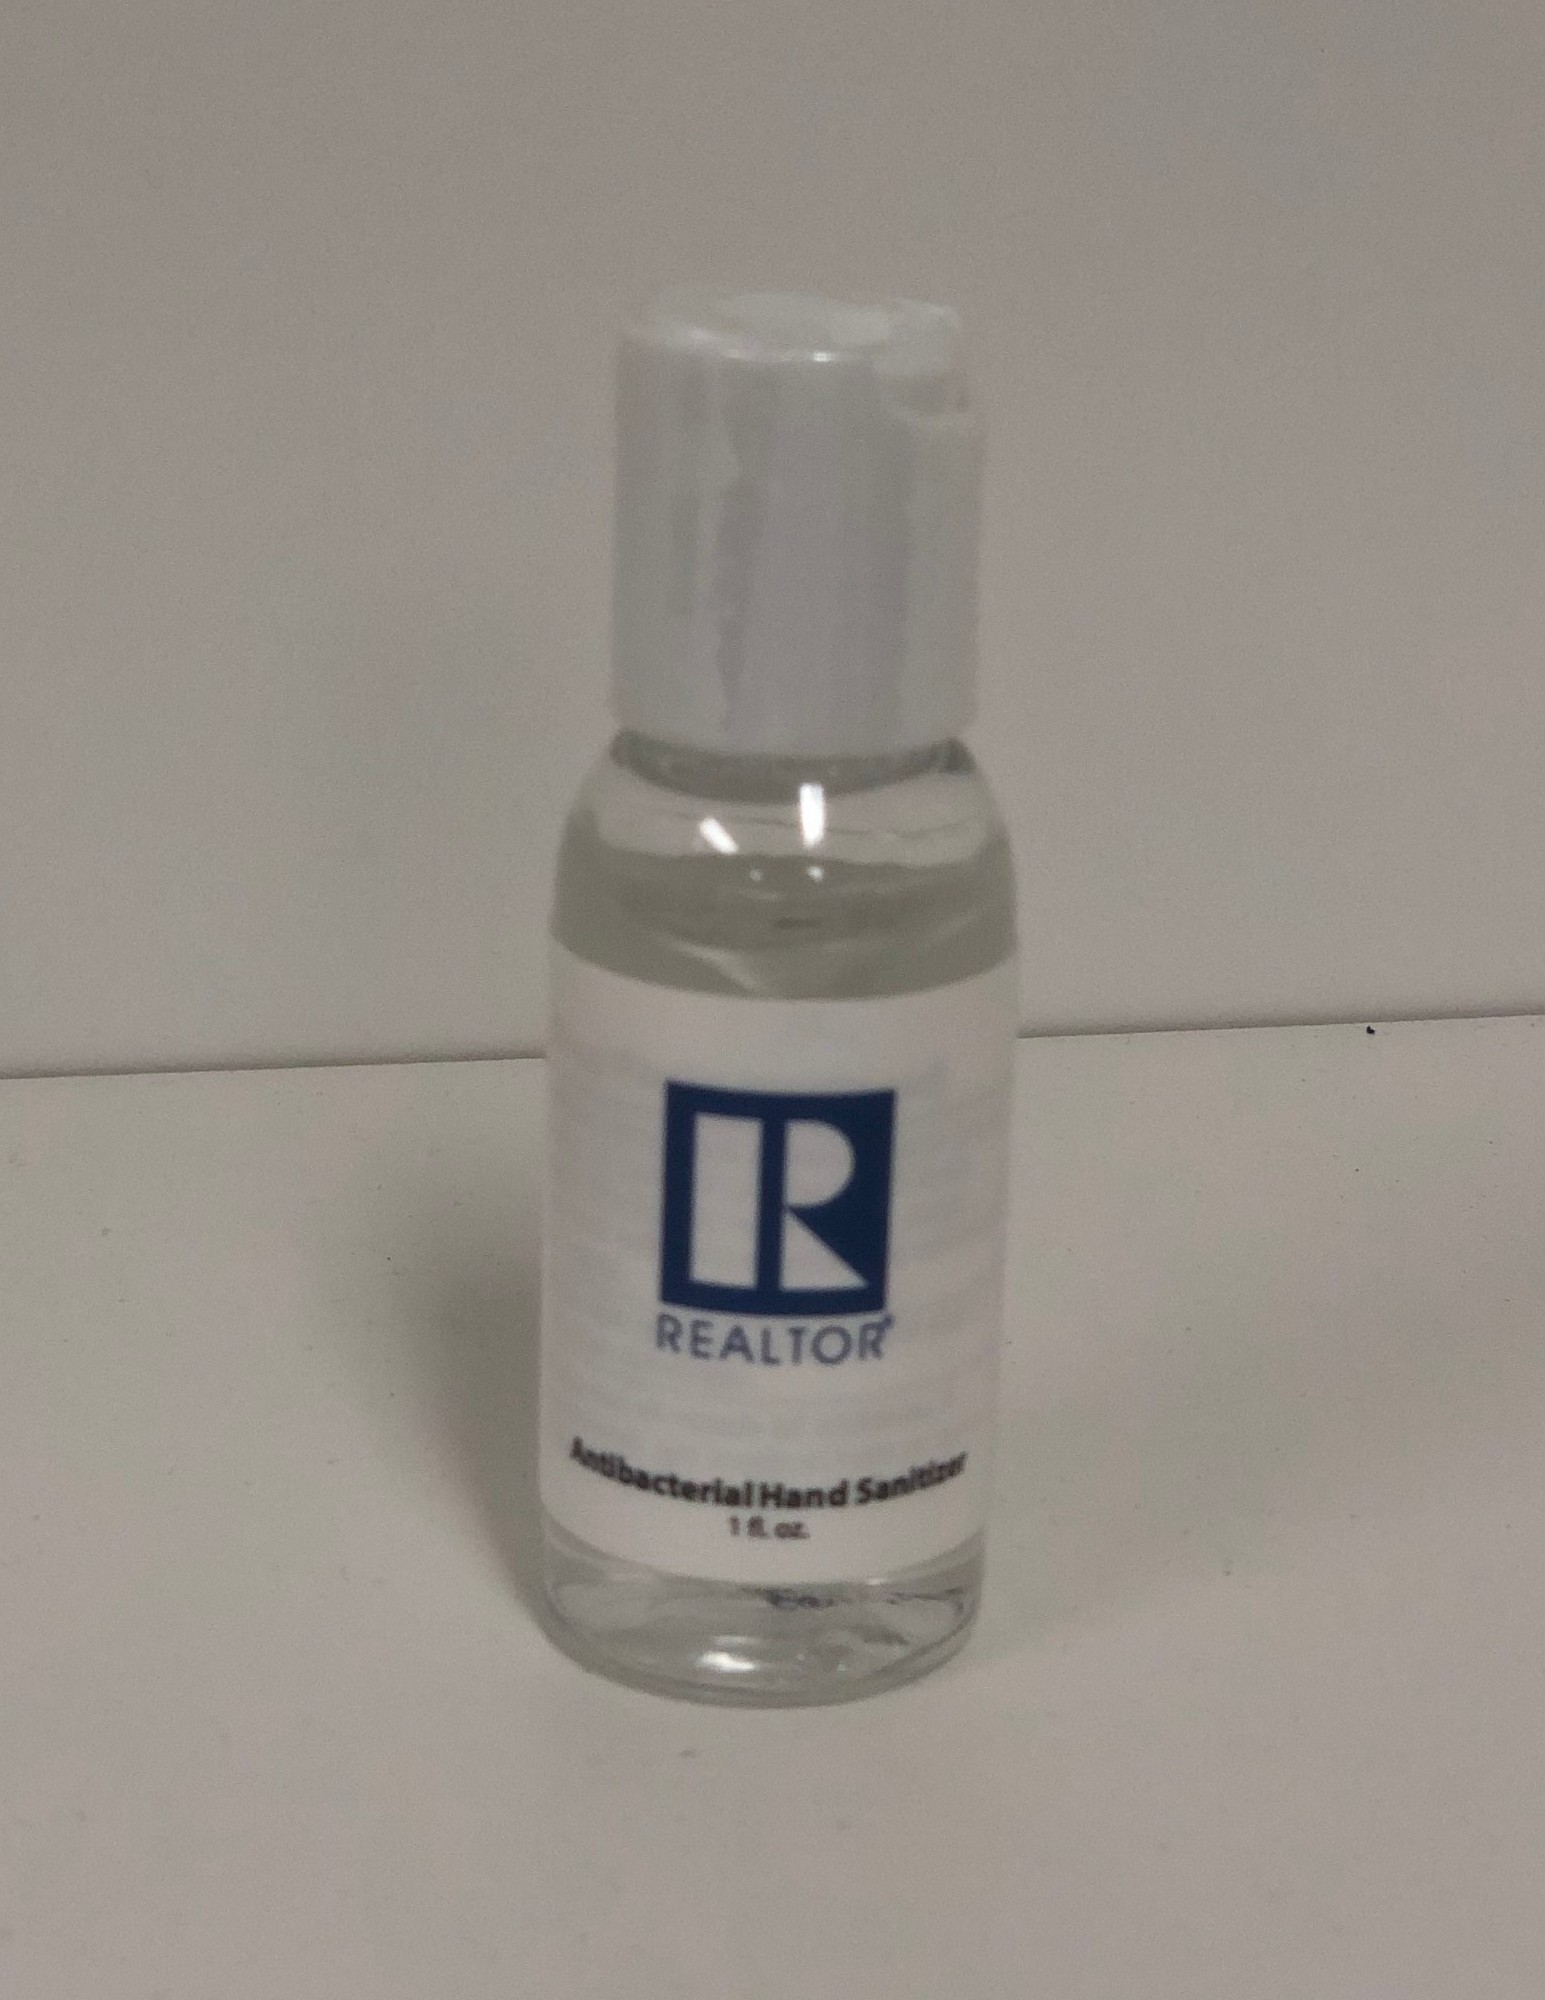 Sanitizer, hand sanitizer, realtor sanitizer, realtor